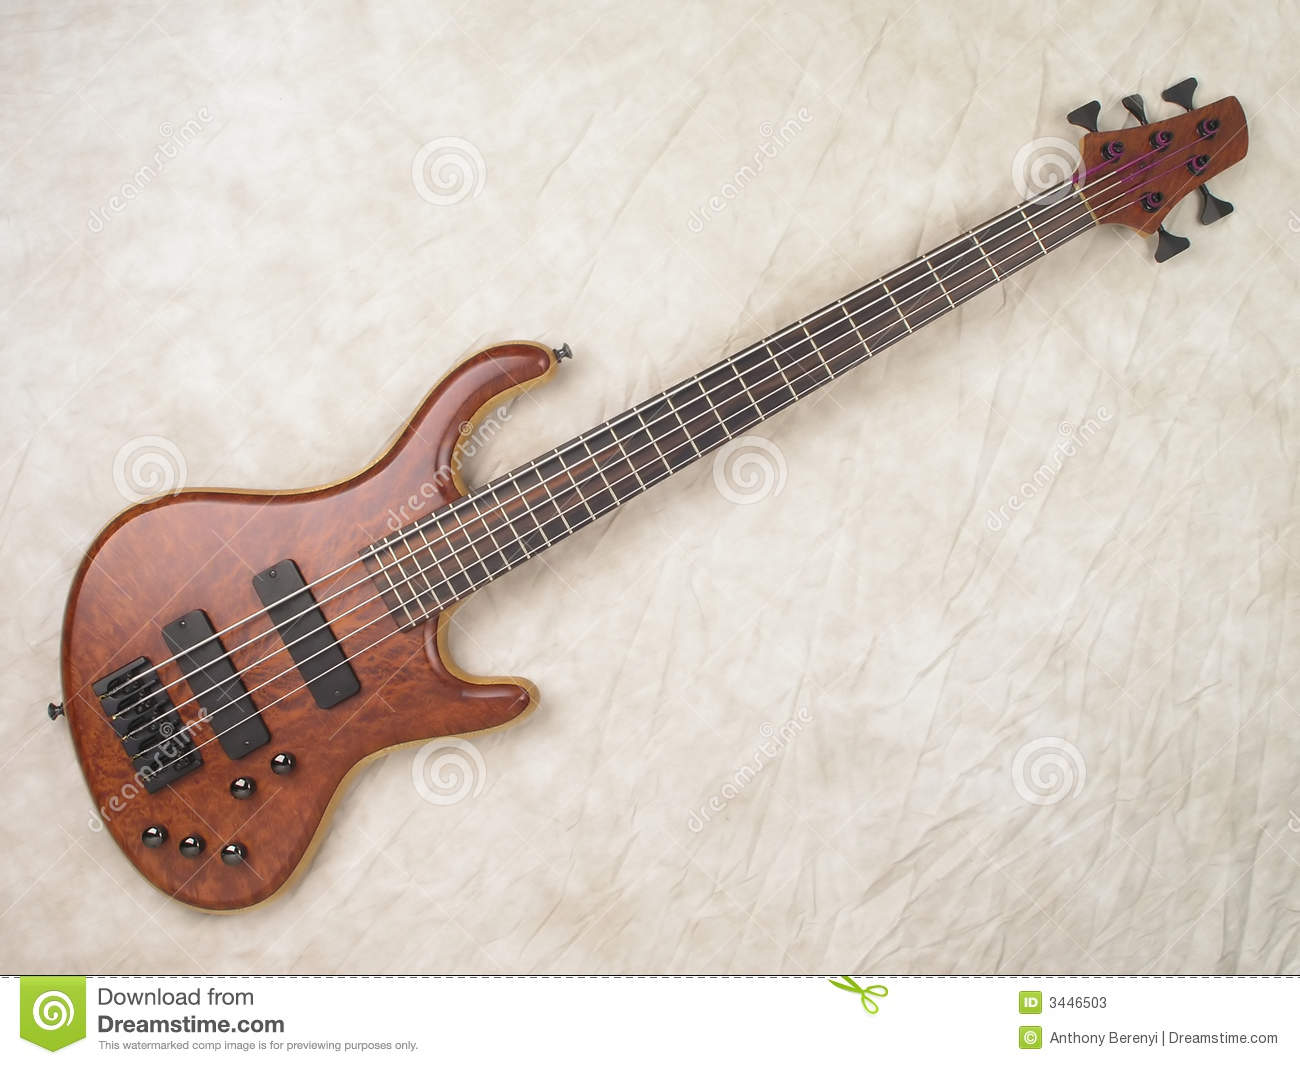 Wood grain bass guitar 1